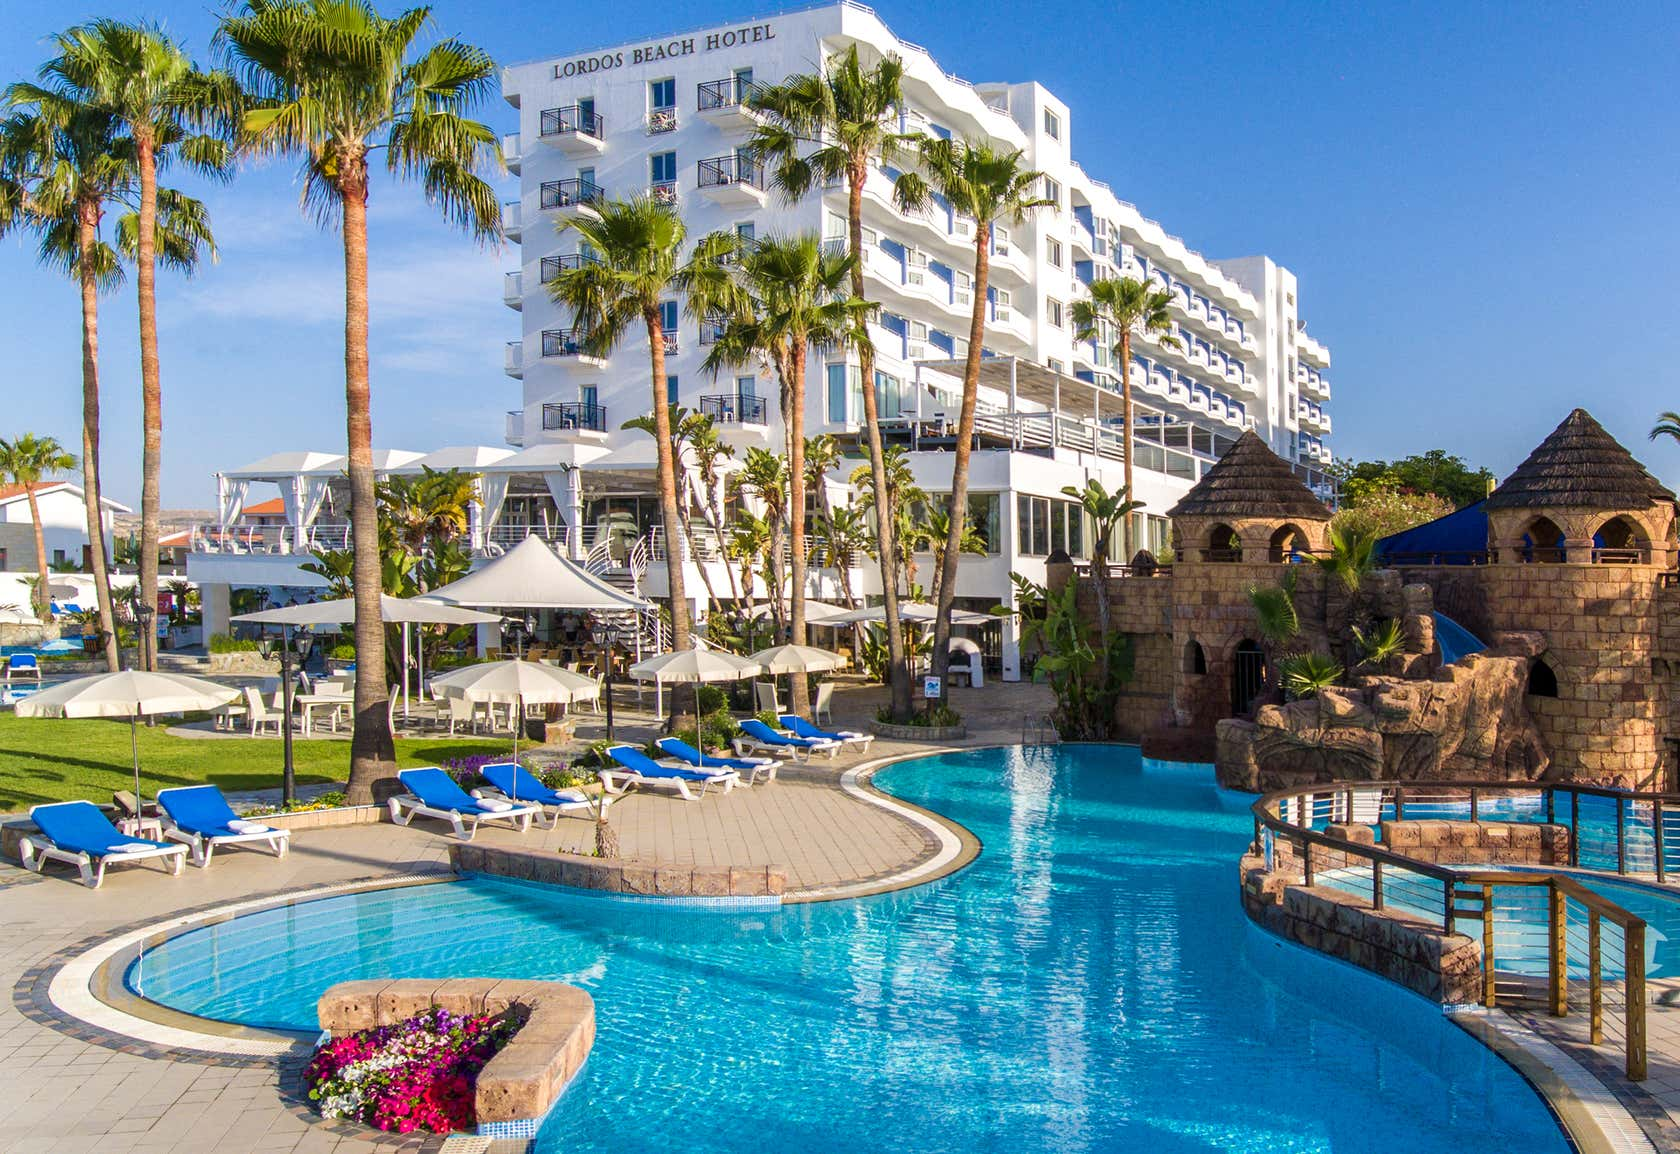 Lordos Beach Hotel and Spa